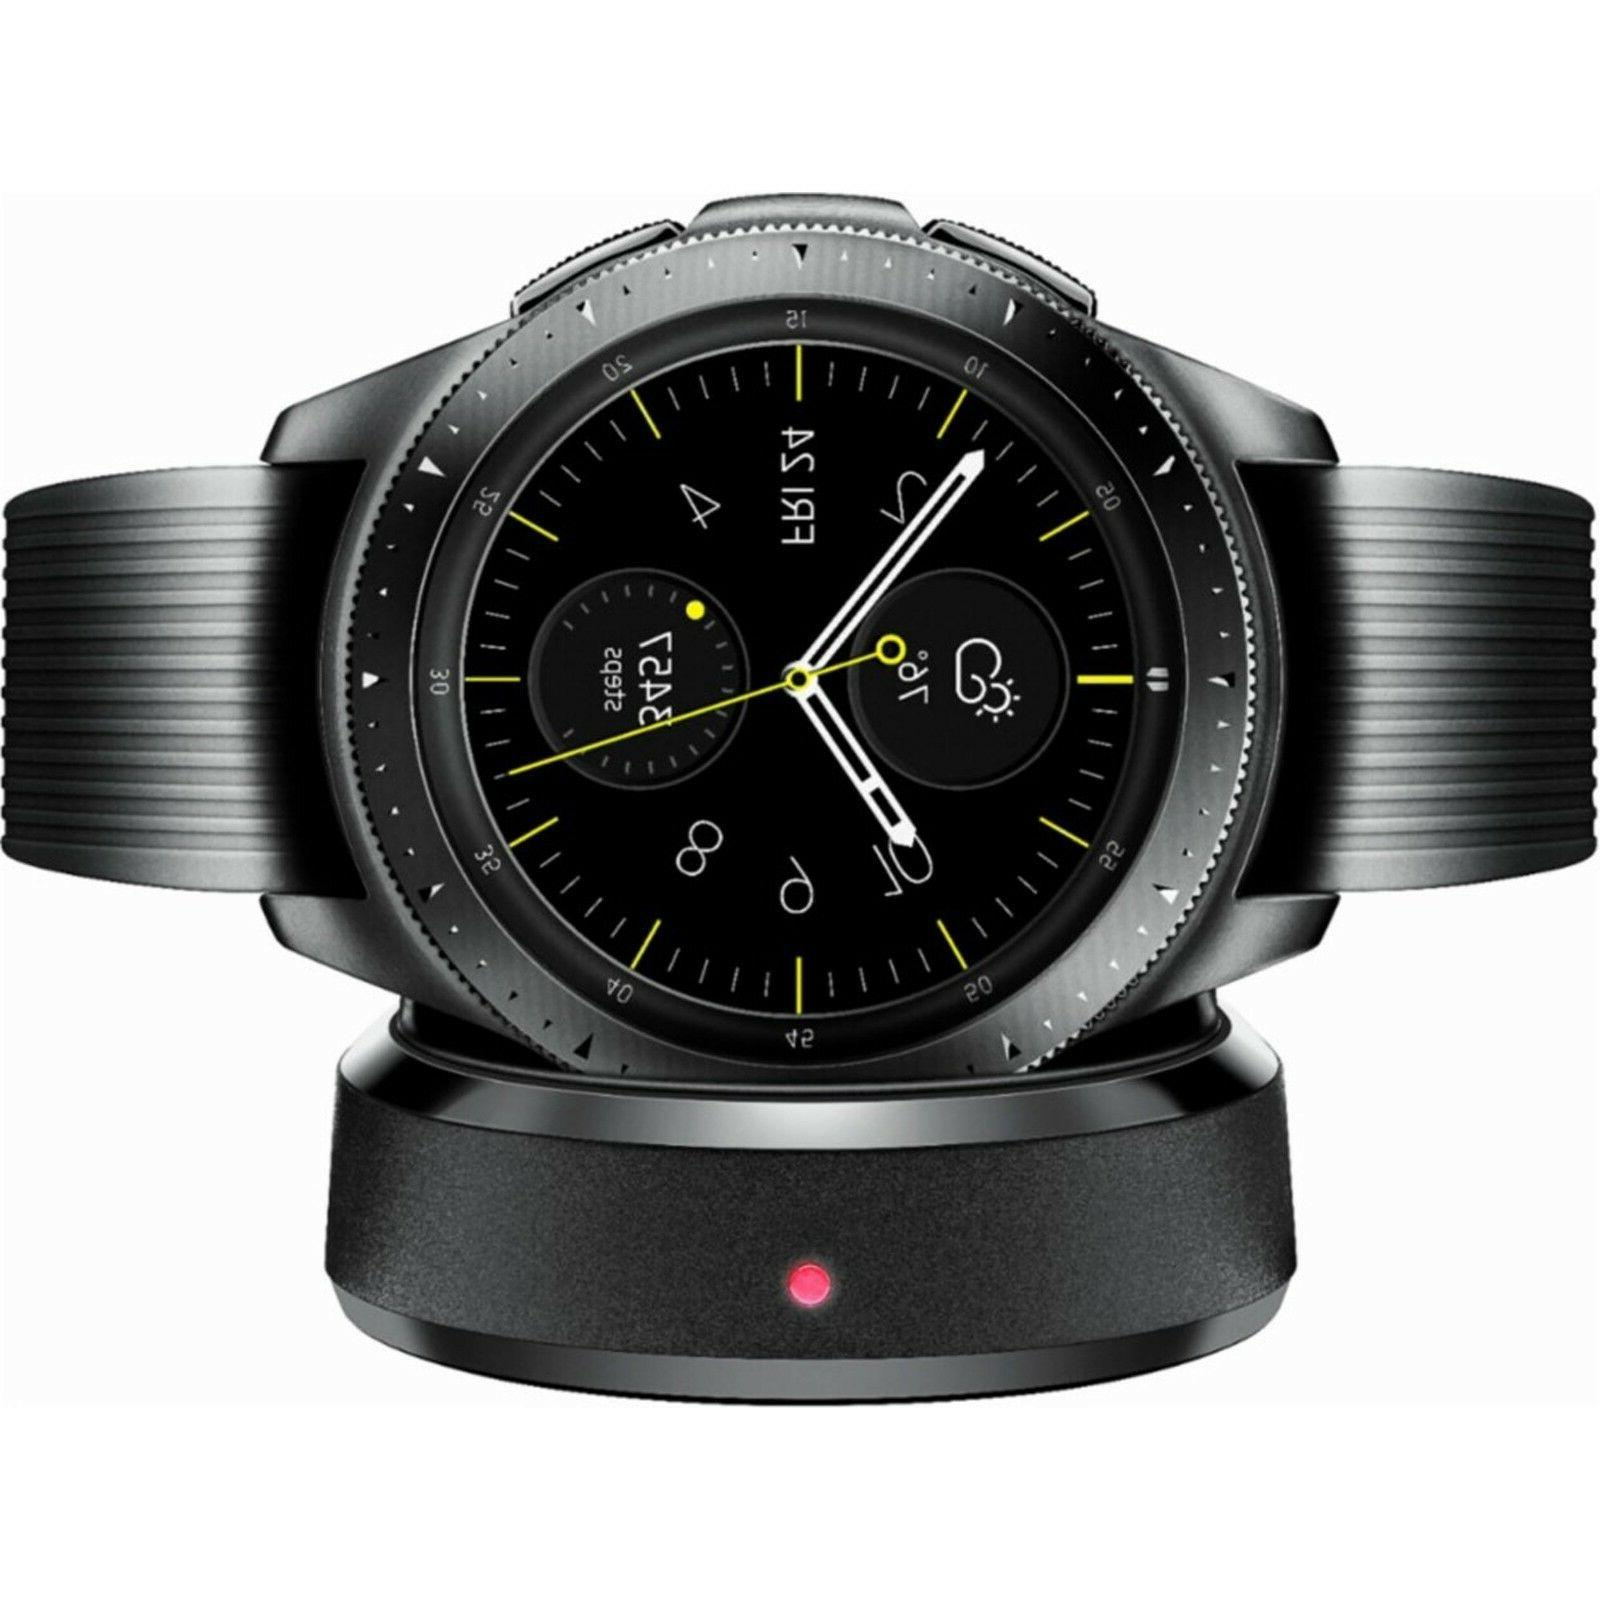 Samsung Galaxy Watch 42mm Sm Manual Guide